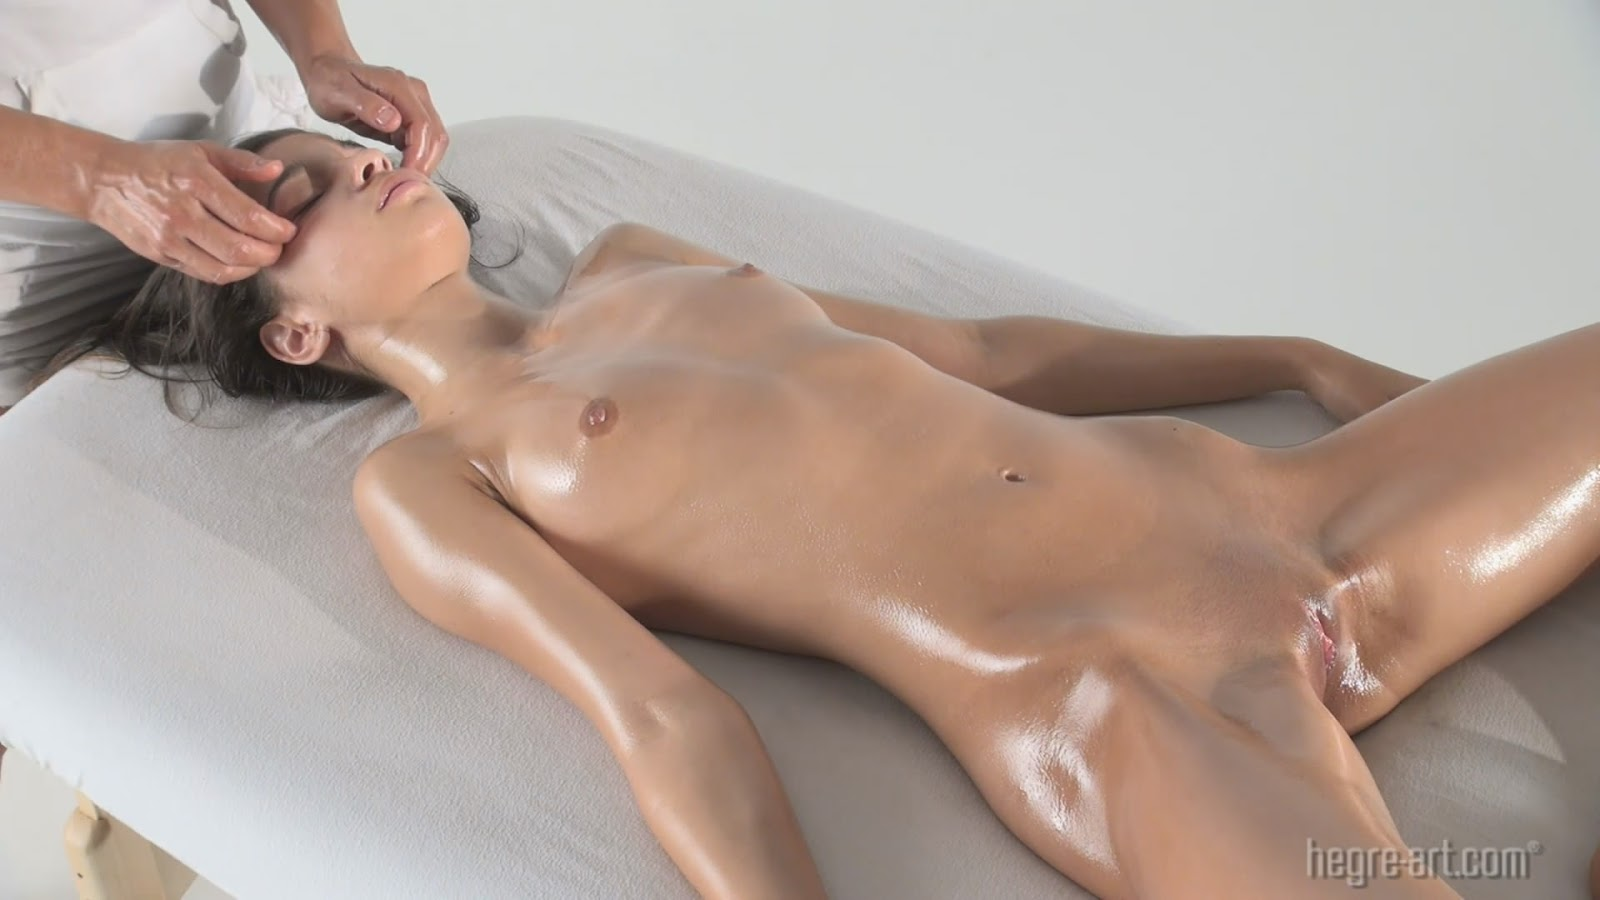 Crazy hot asian mom and her son playin